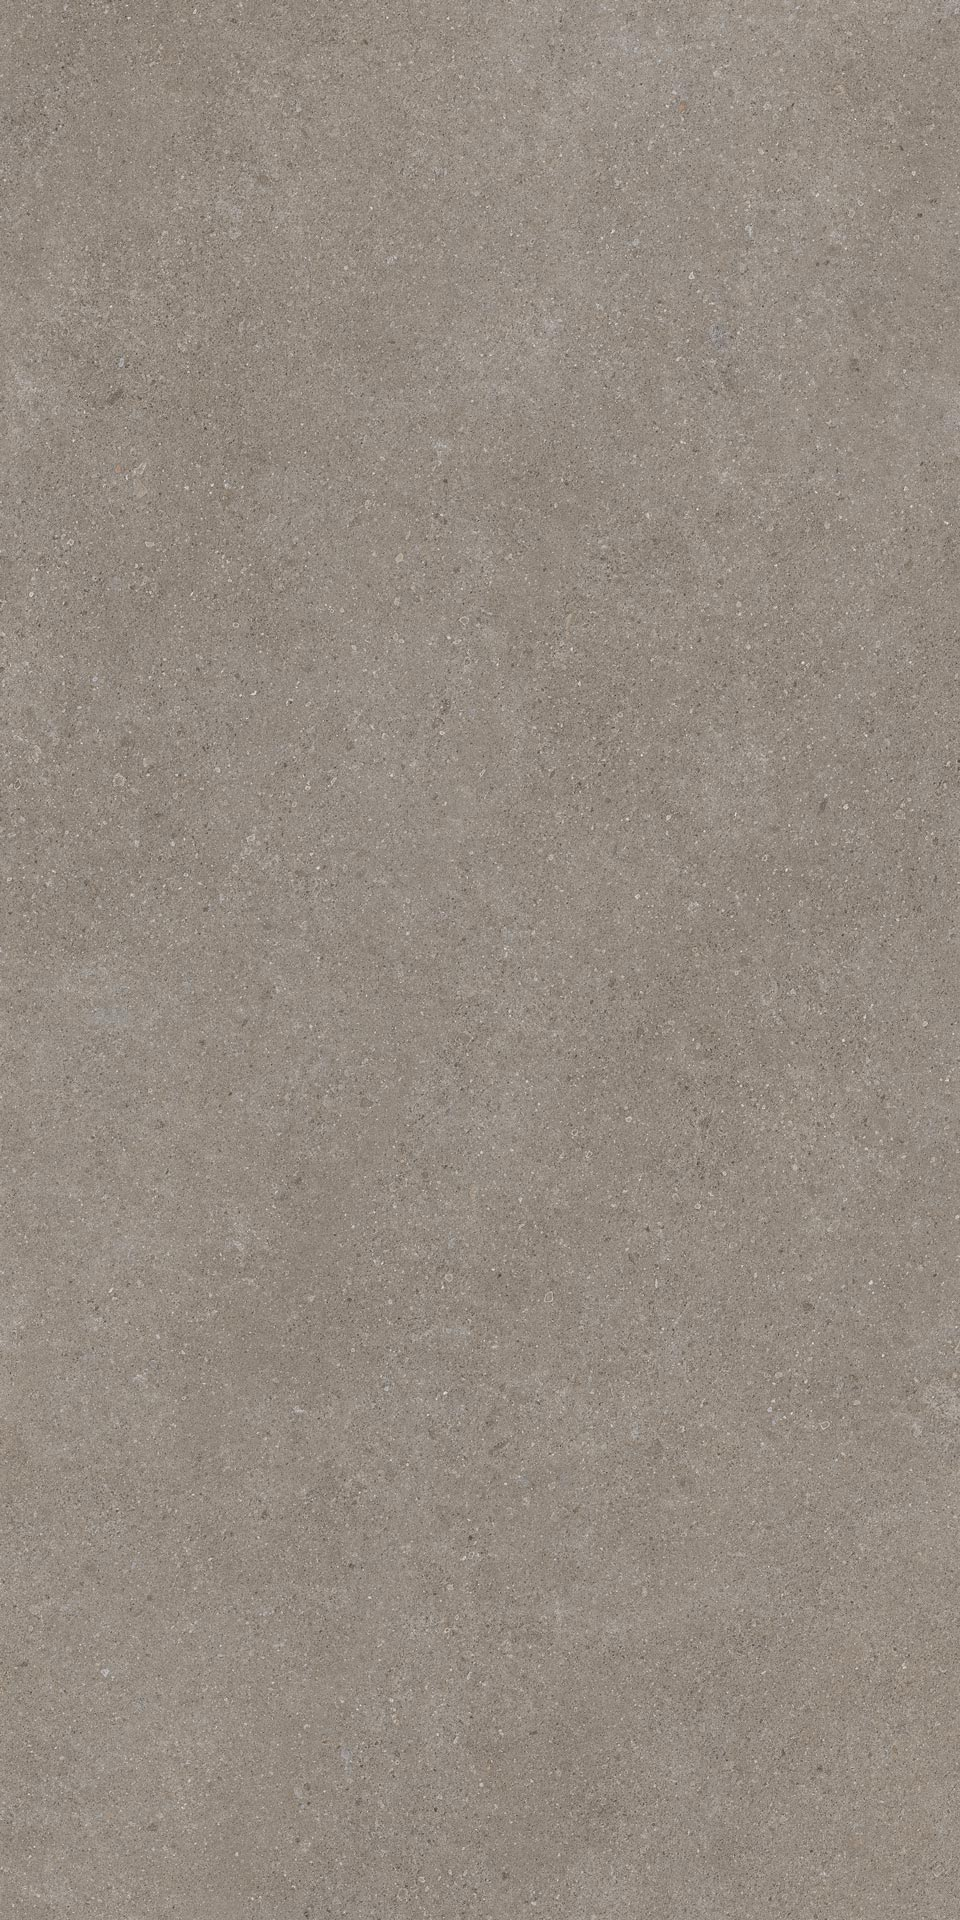 kone-grey-atlas-plan-porcelain-slabs-9mm-thick